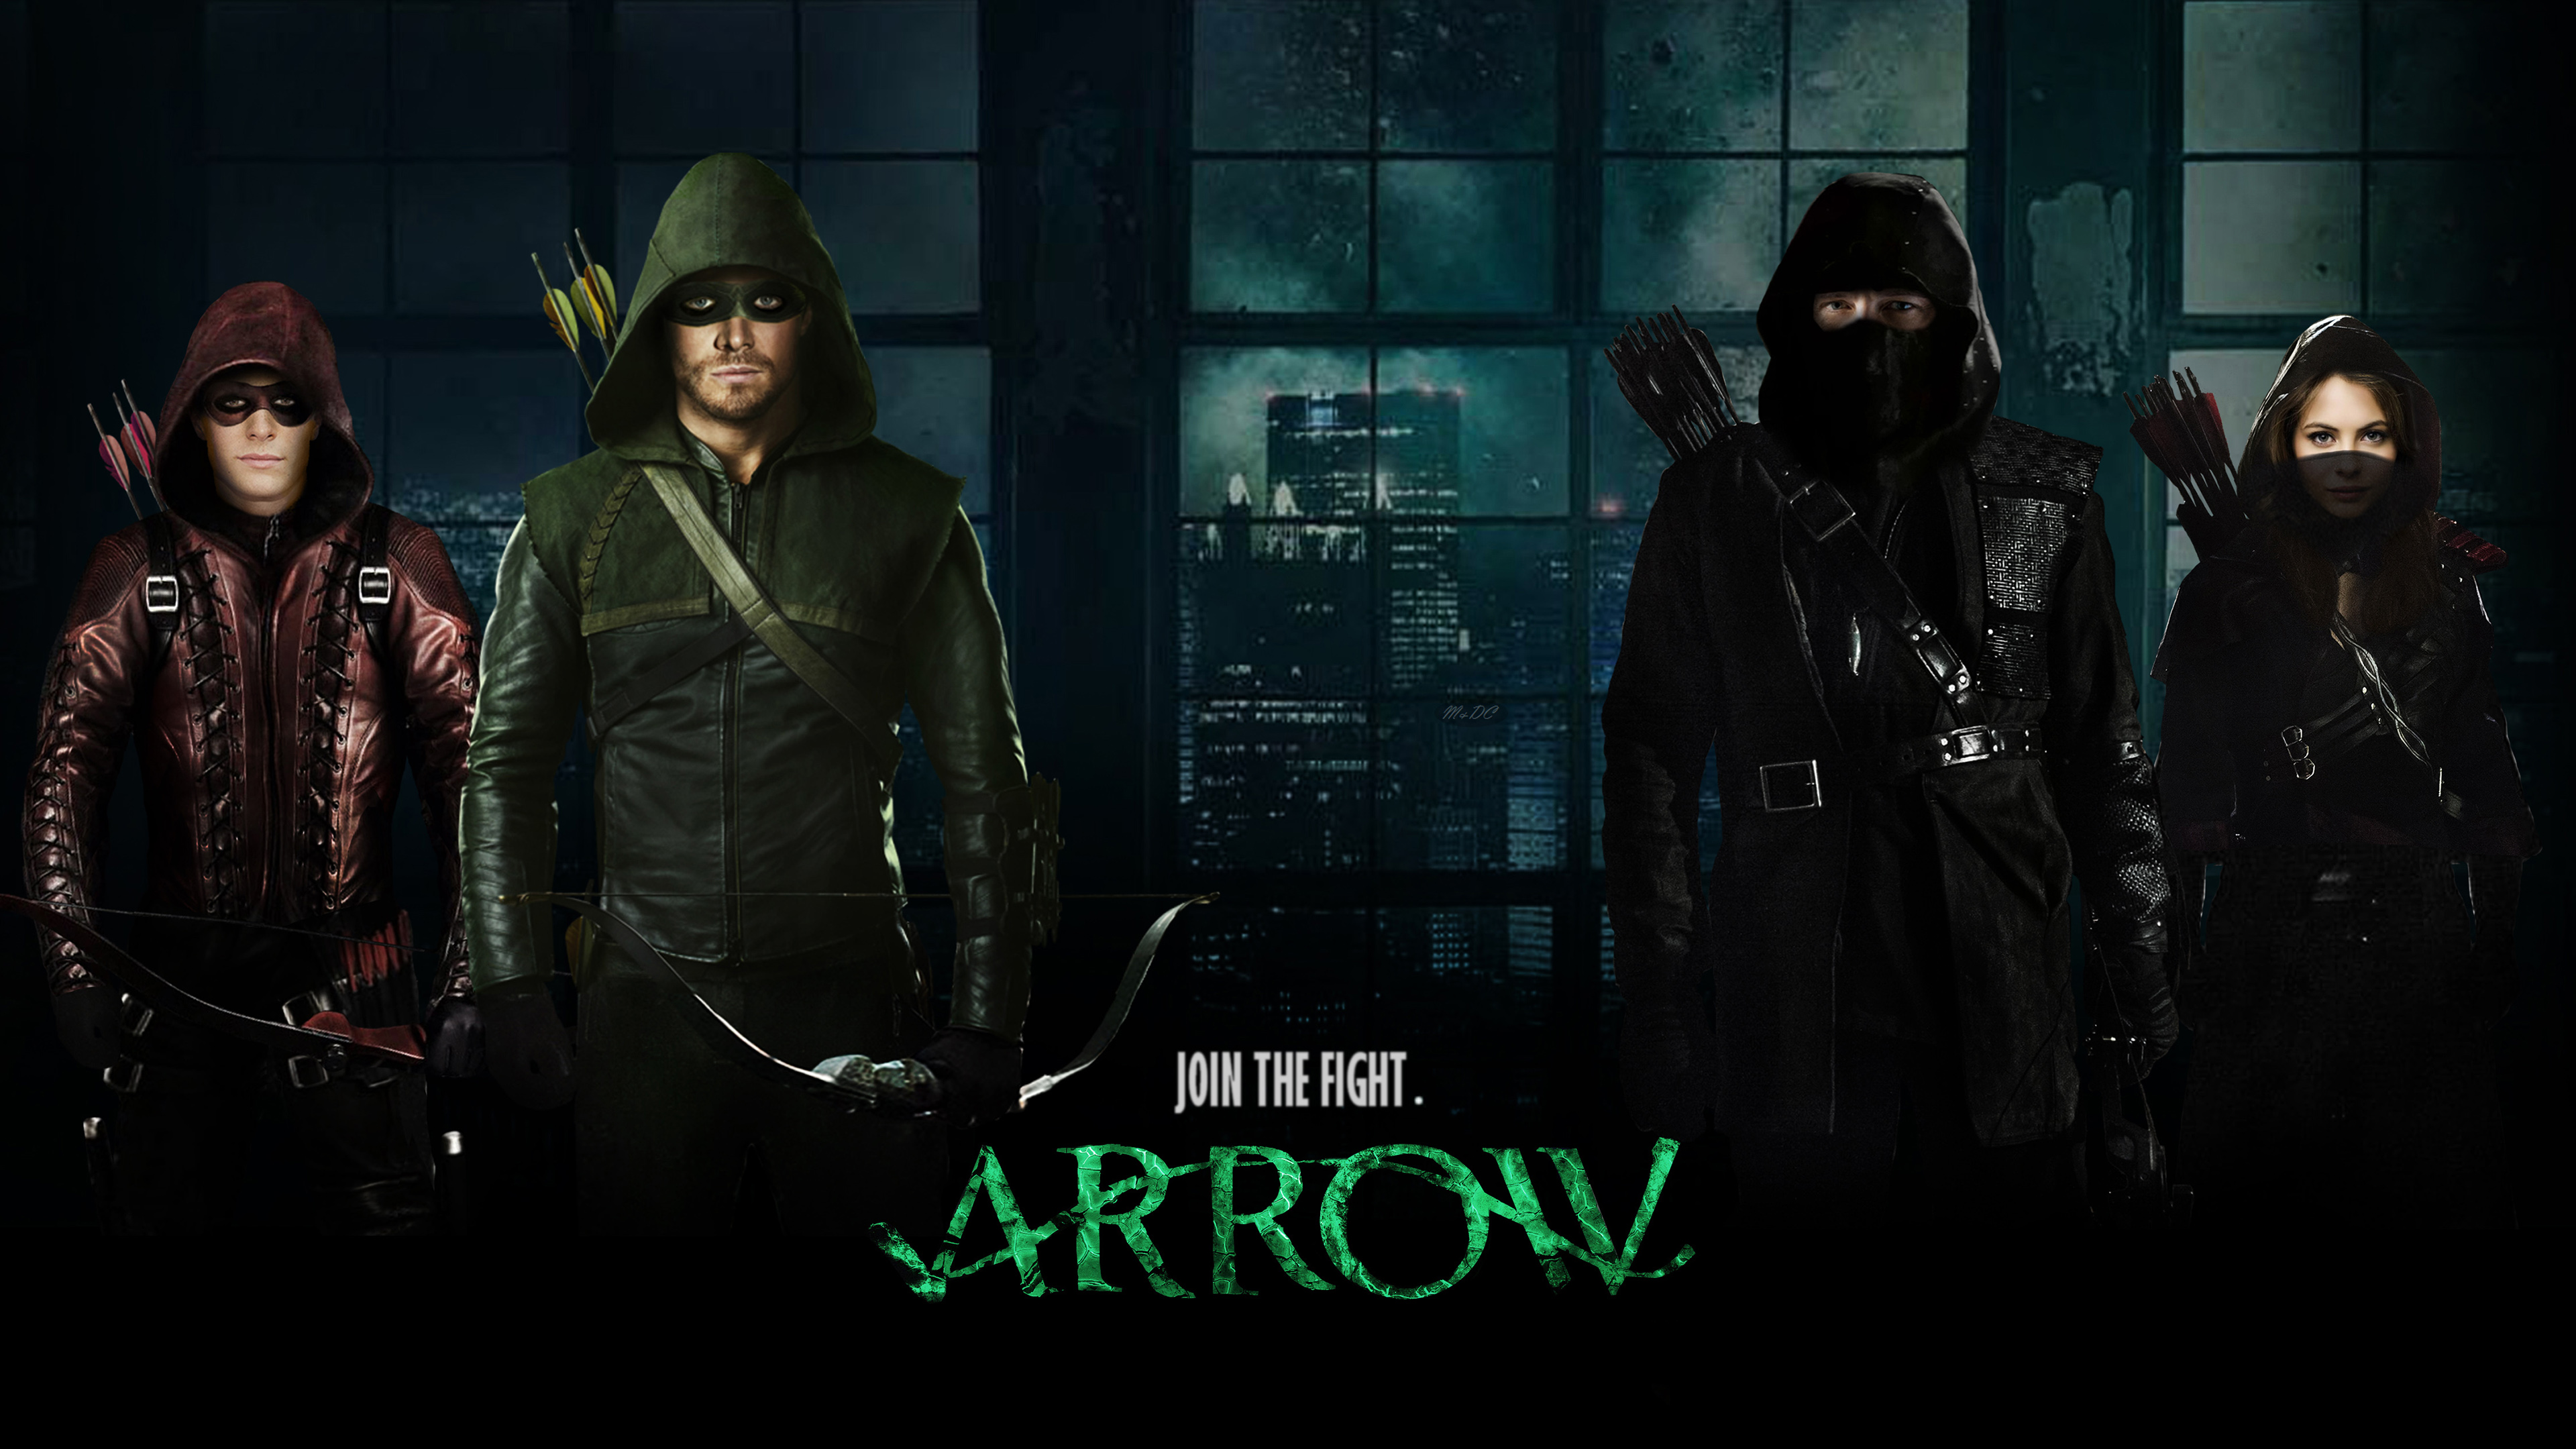 arrow tv series | free desktop wallpapers for widescreen, hd and mobile